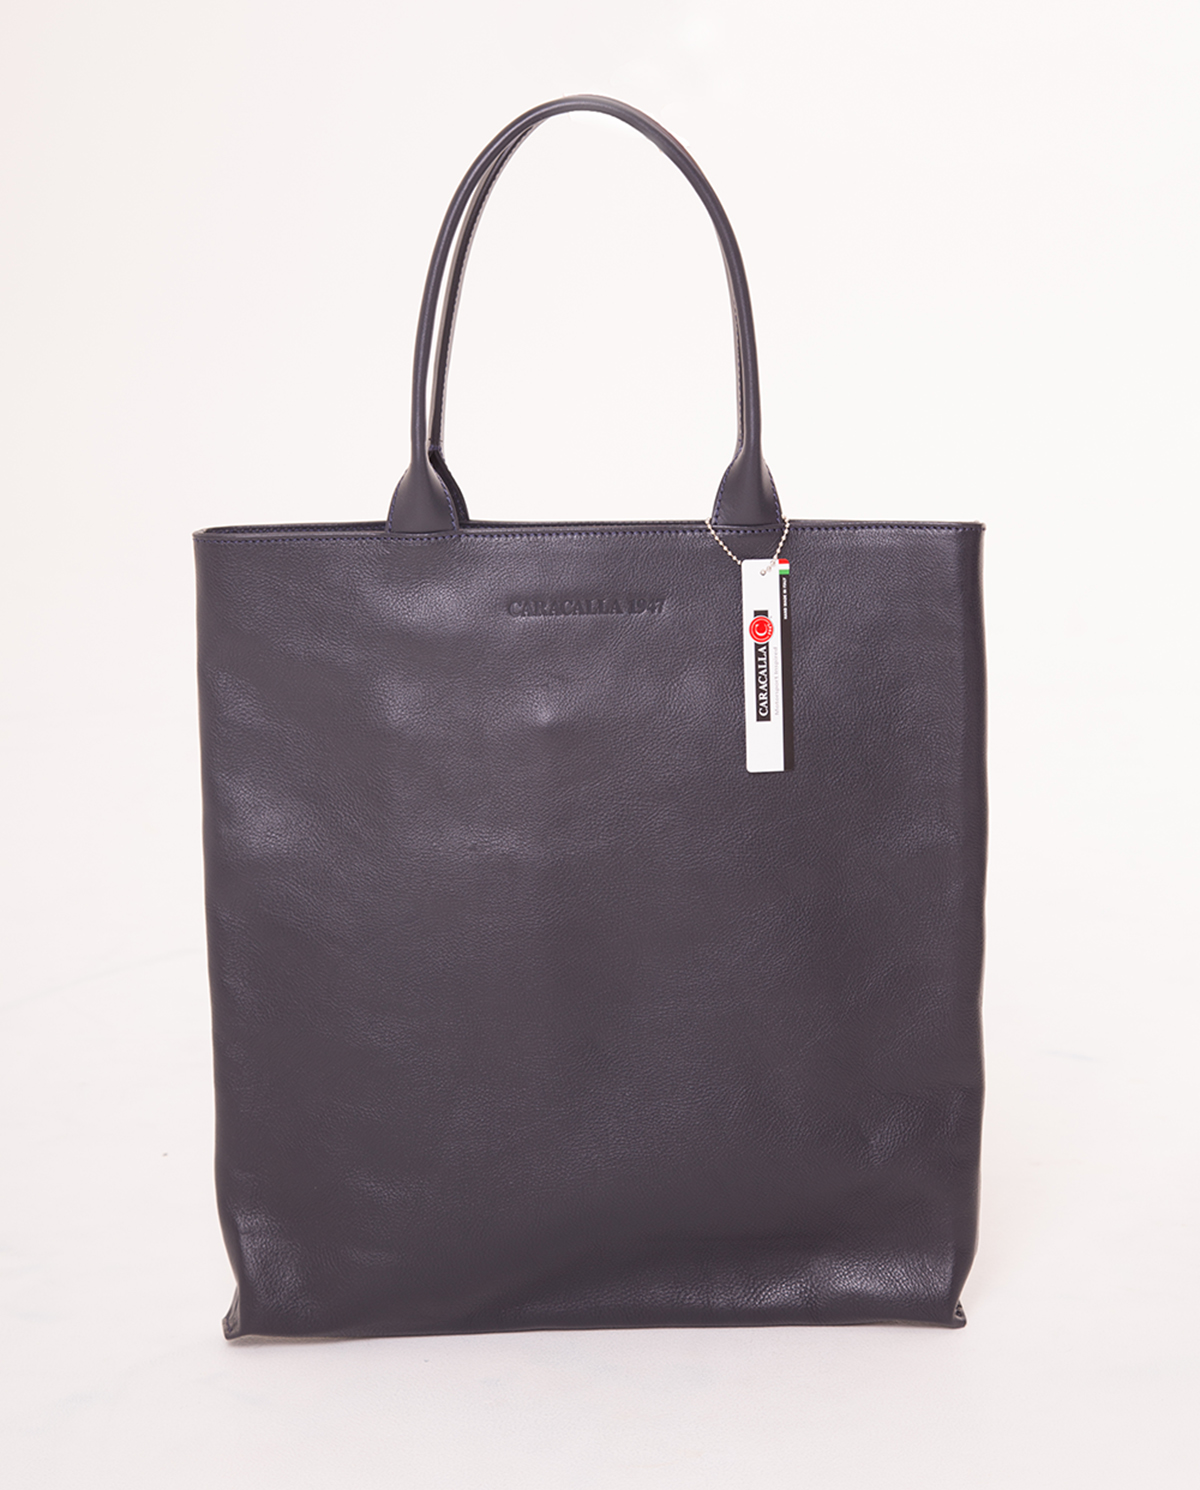 Modena Tote by Caracalla in Navy